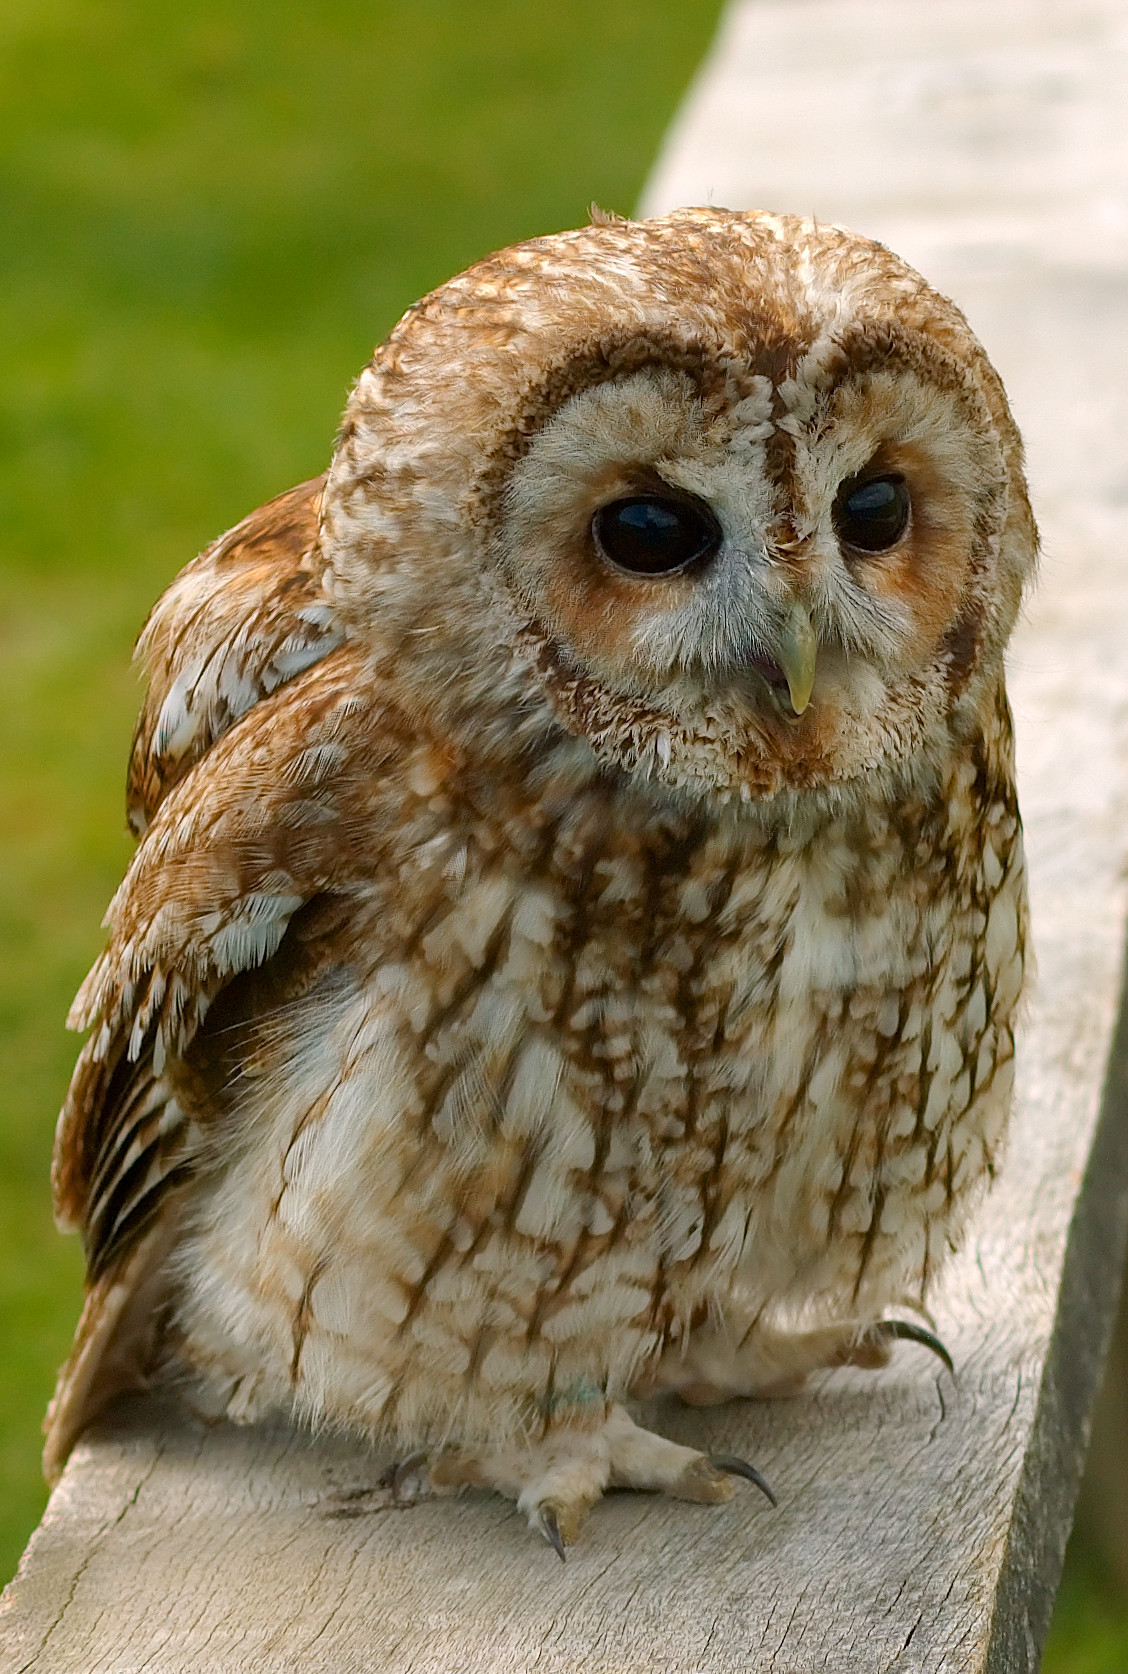 http://upload.wikimedia.org/wikipedia/commons/4/4e/Tawny_wiki.jpg